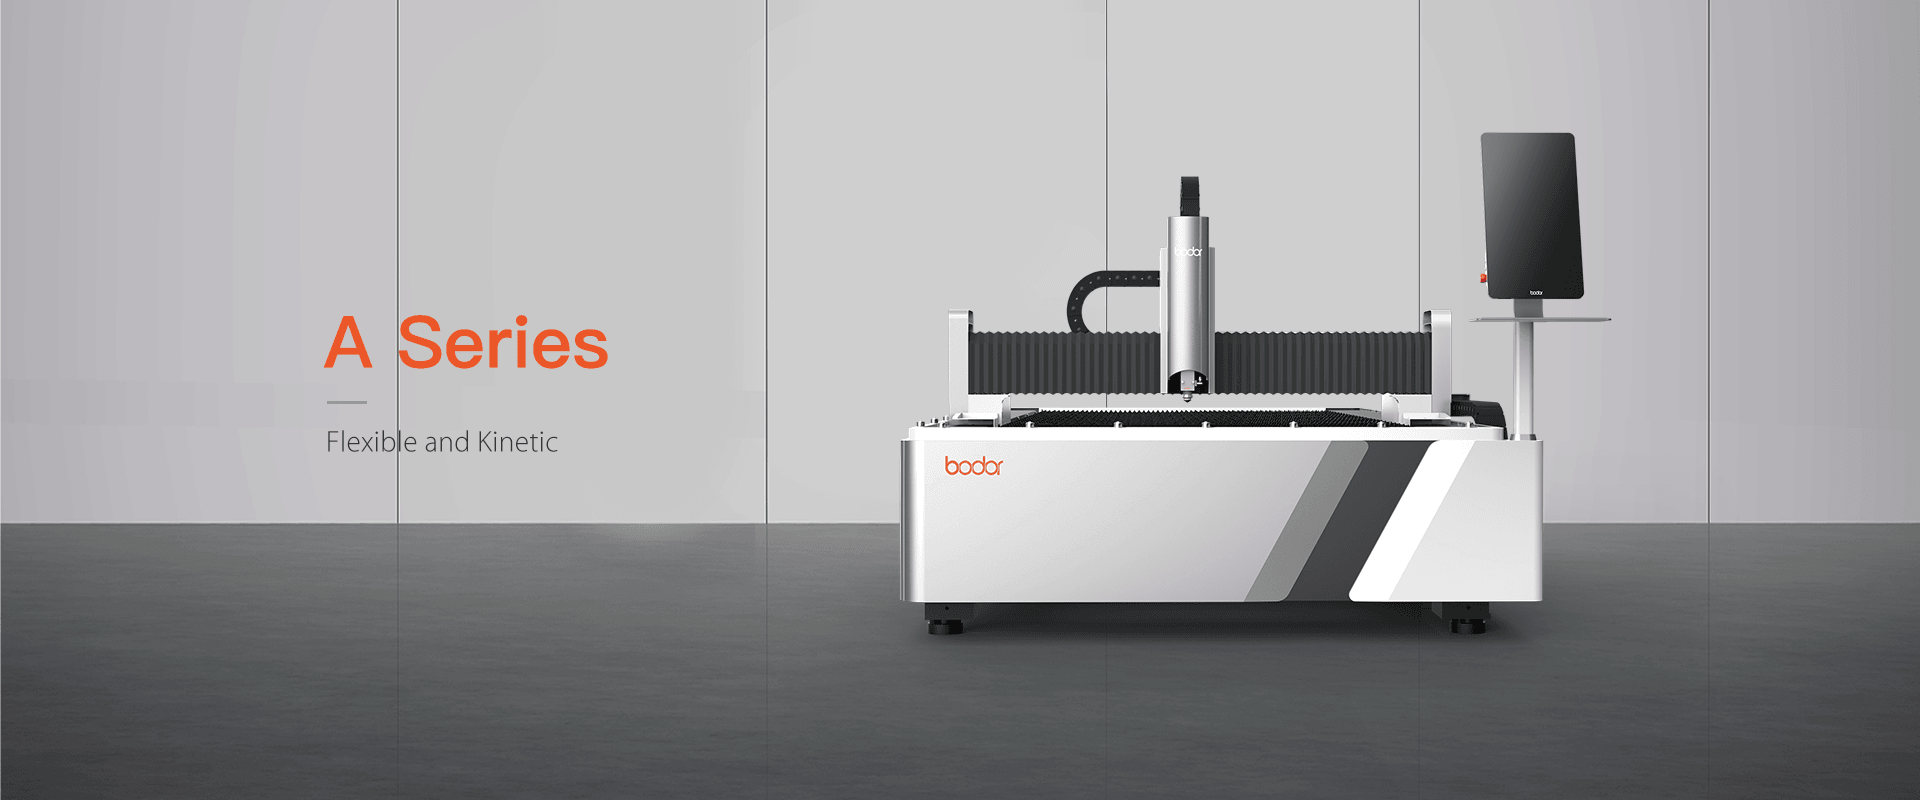 Economical plate fiber laser cutting machine A Series